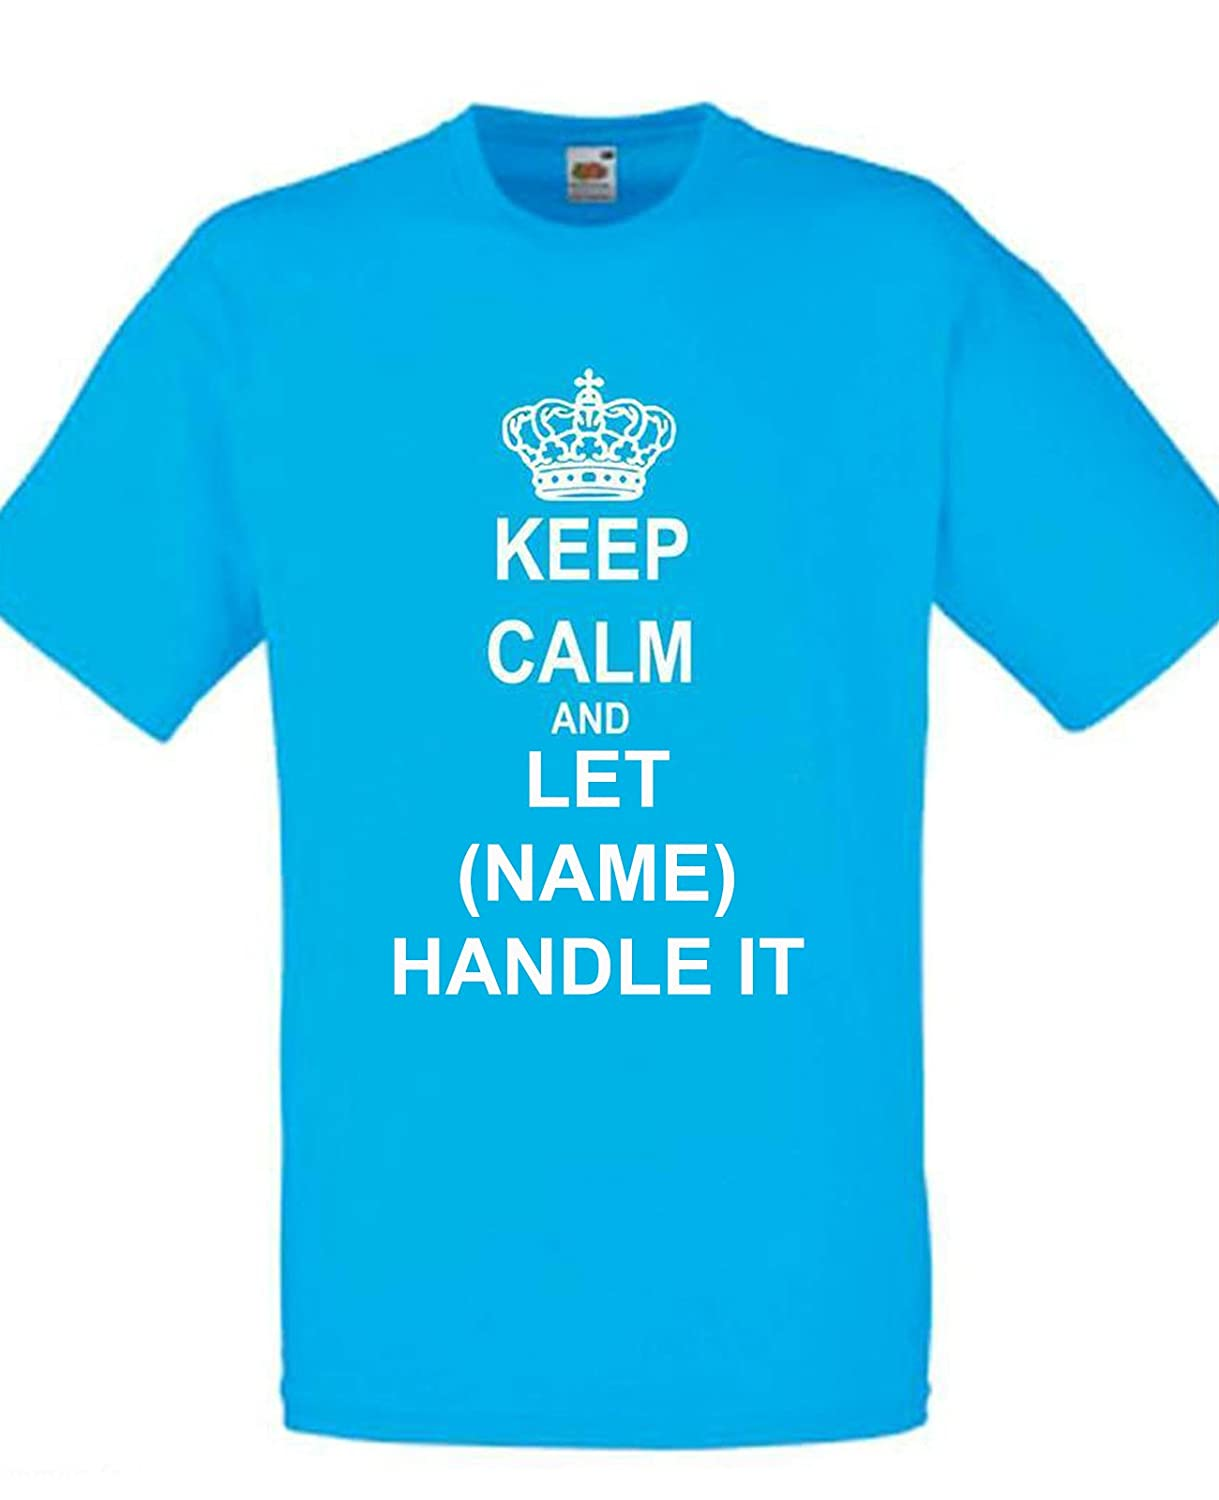 T shirt design keep calm - Keep Calm And Let Your Name Handle It T Shirt Personalised Custom Printed Tee